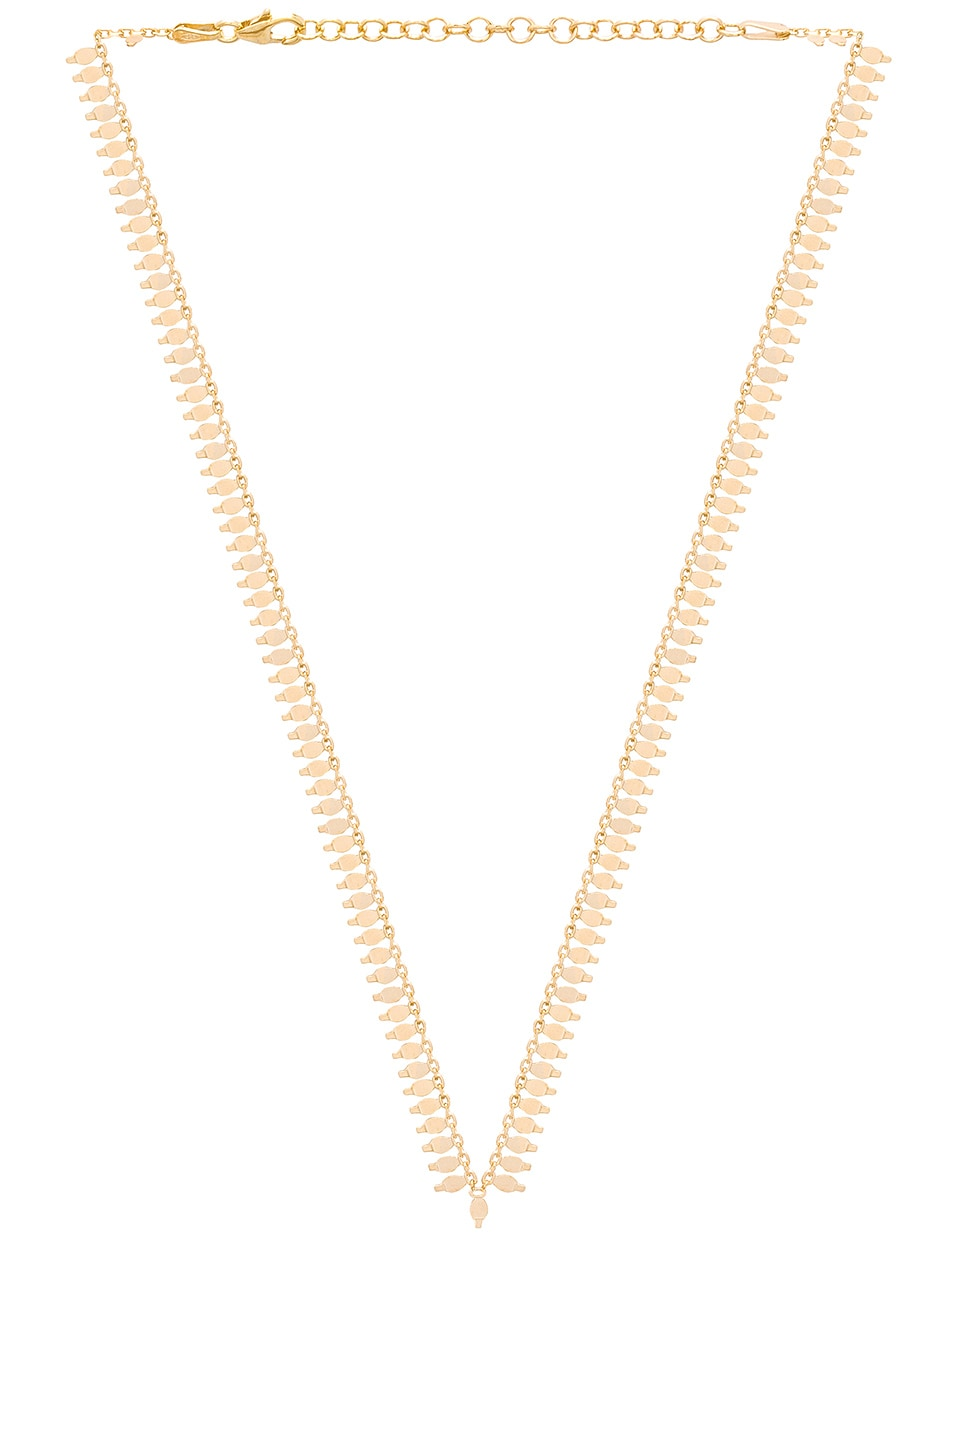 JOOLZ BY MARTHA CALVO Tulum Necklace in Metallic Gold